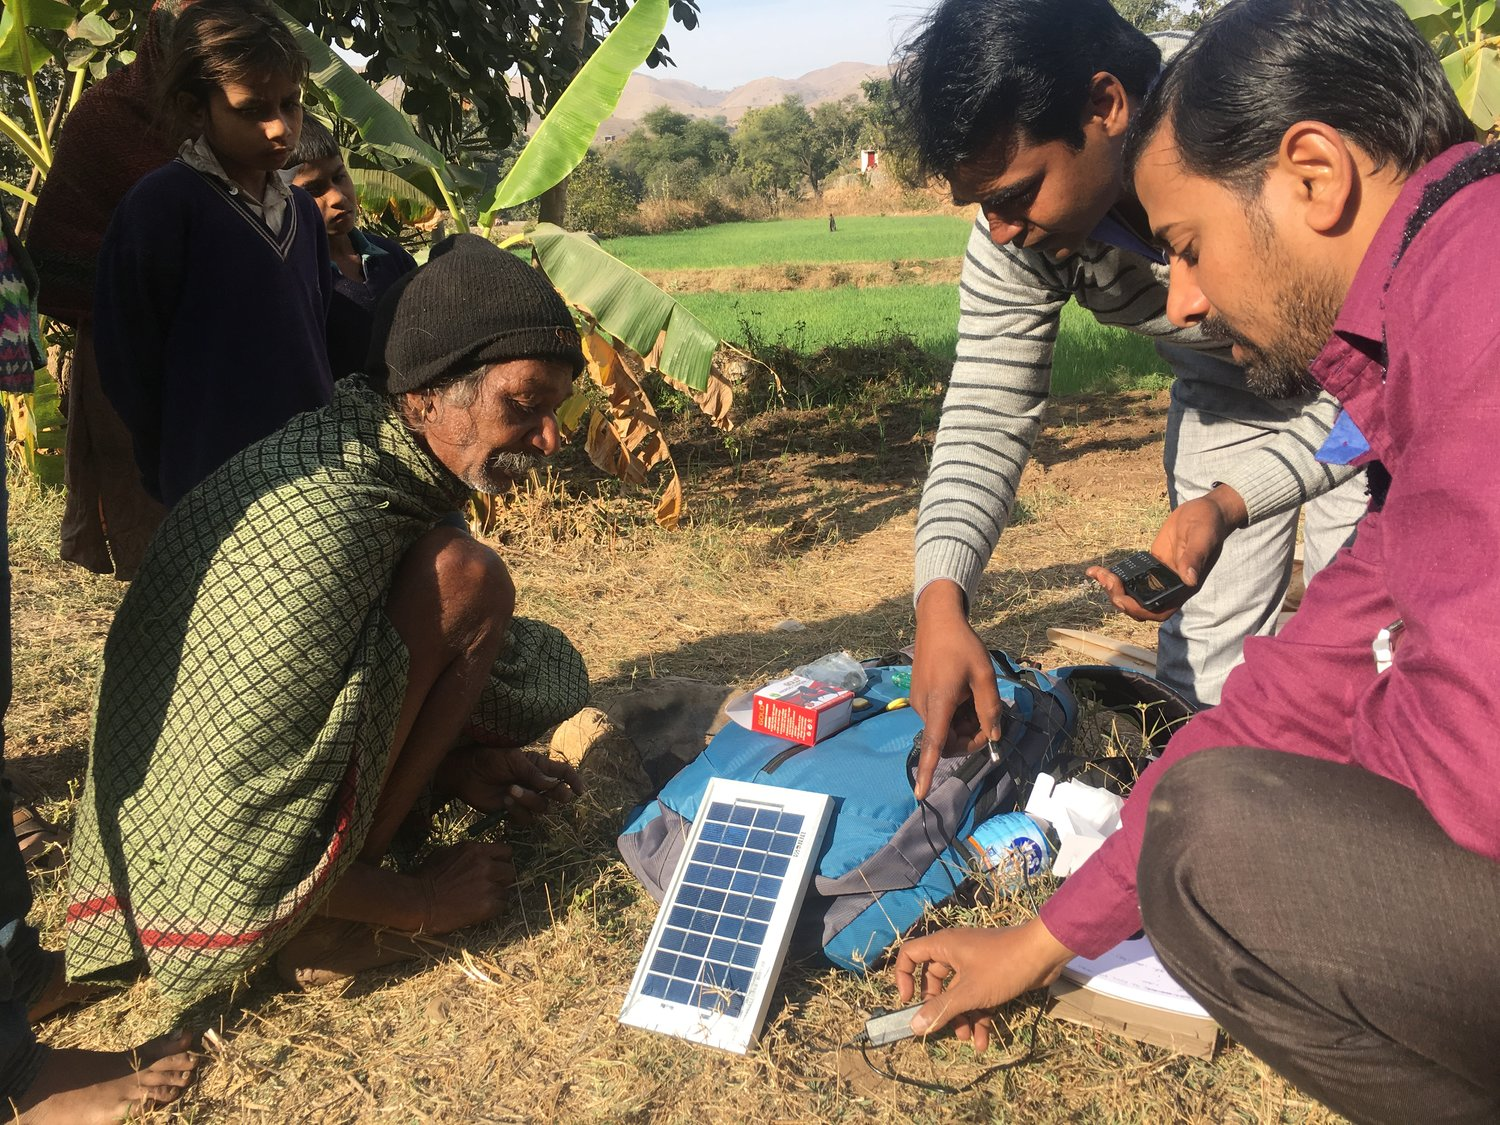 A farmer in Rajasthan learns how to set up and charge his mobile phone as part of the Data-on-Demand survey.